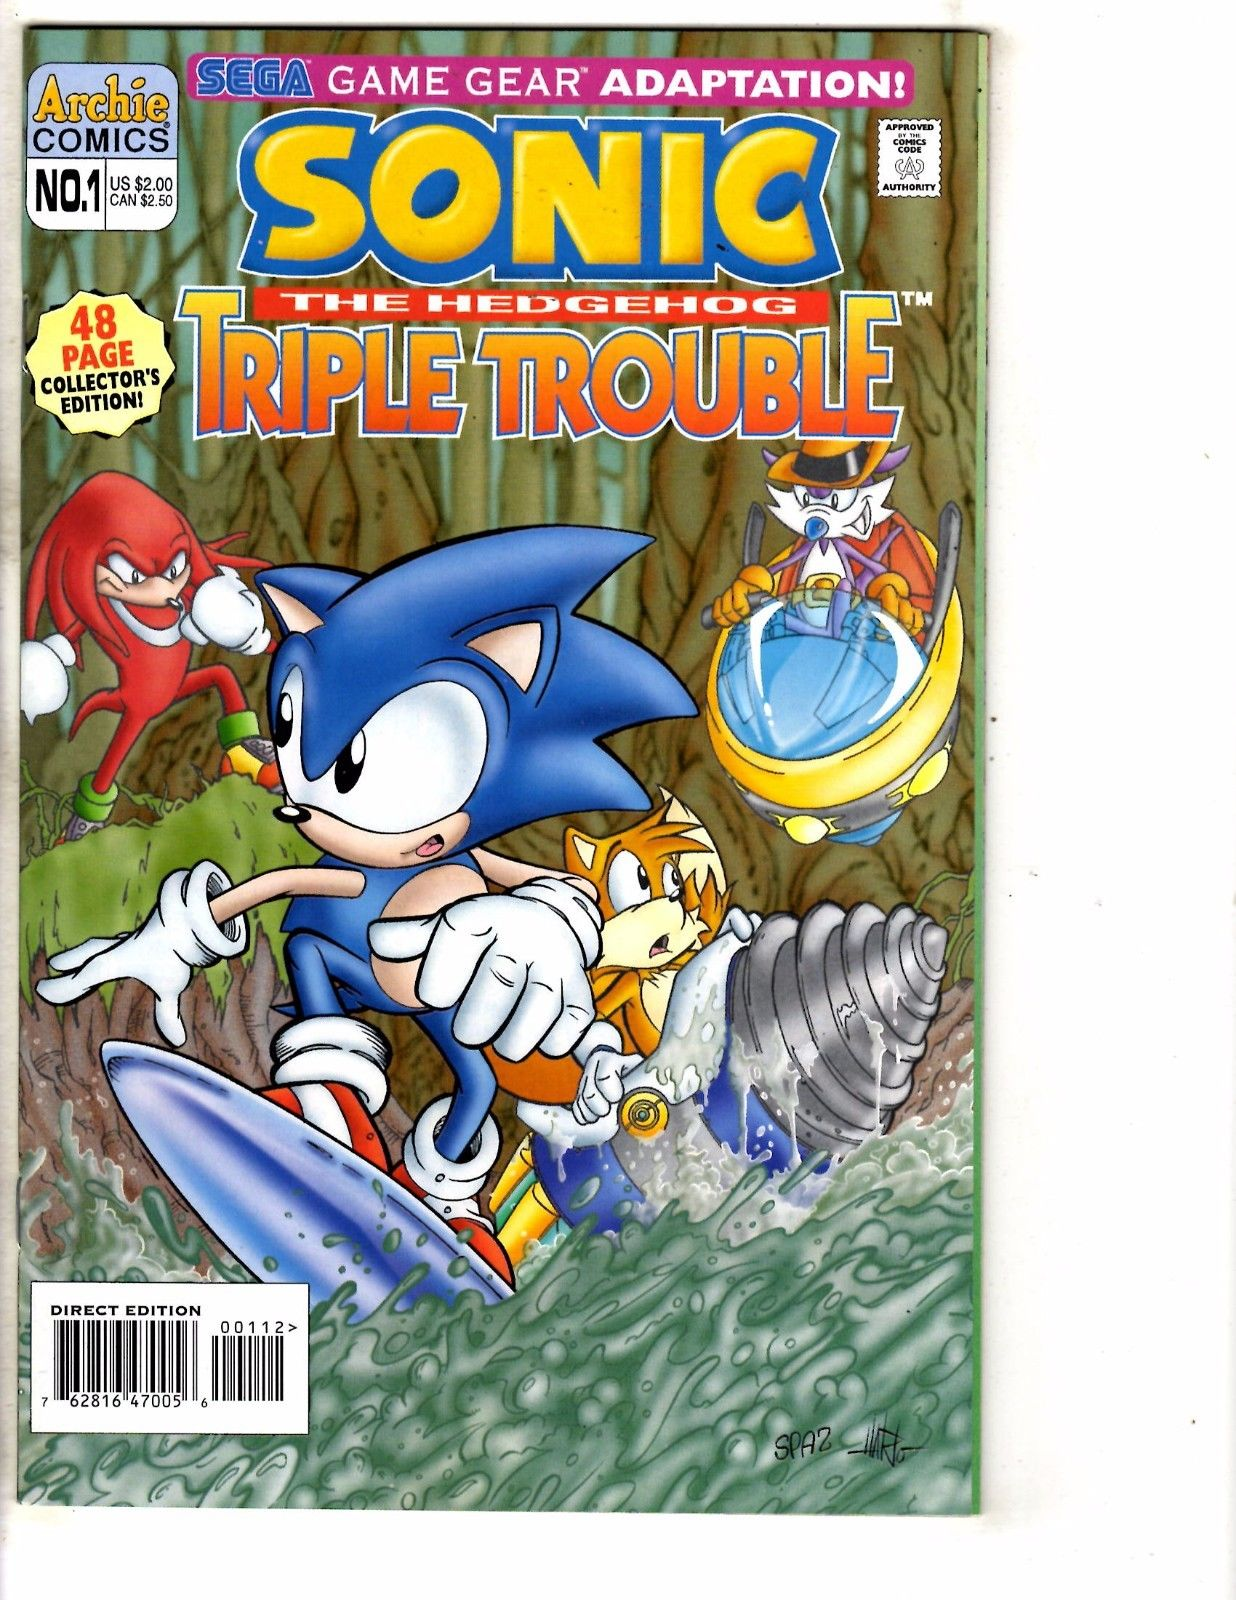 Sonic The Hedgehog Triple Trouble 1 Nm Archie Comic Book Game